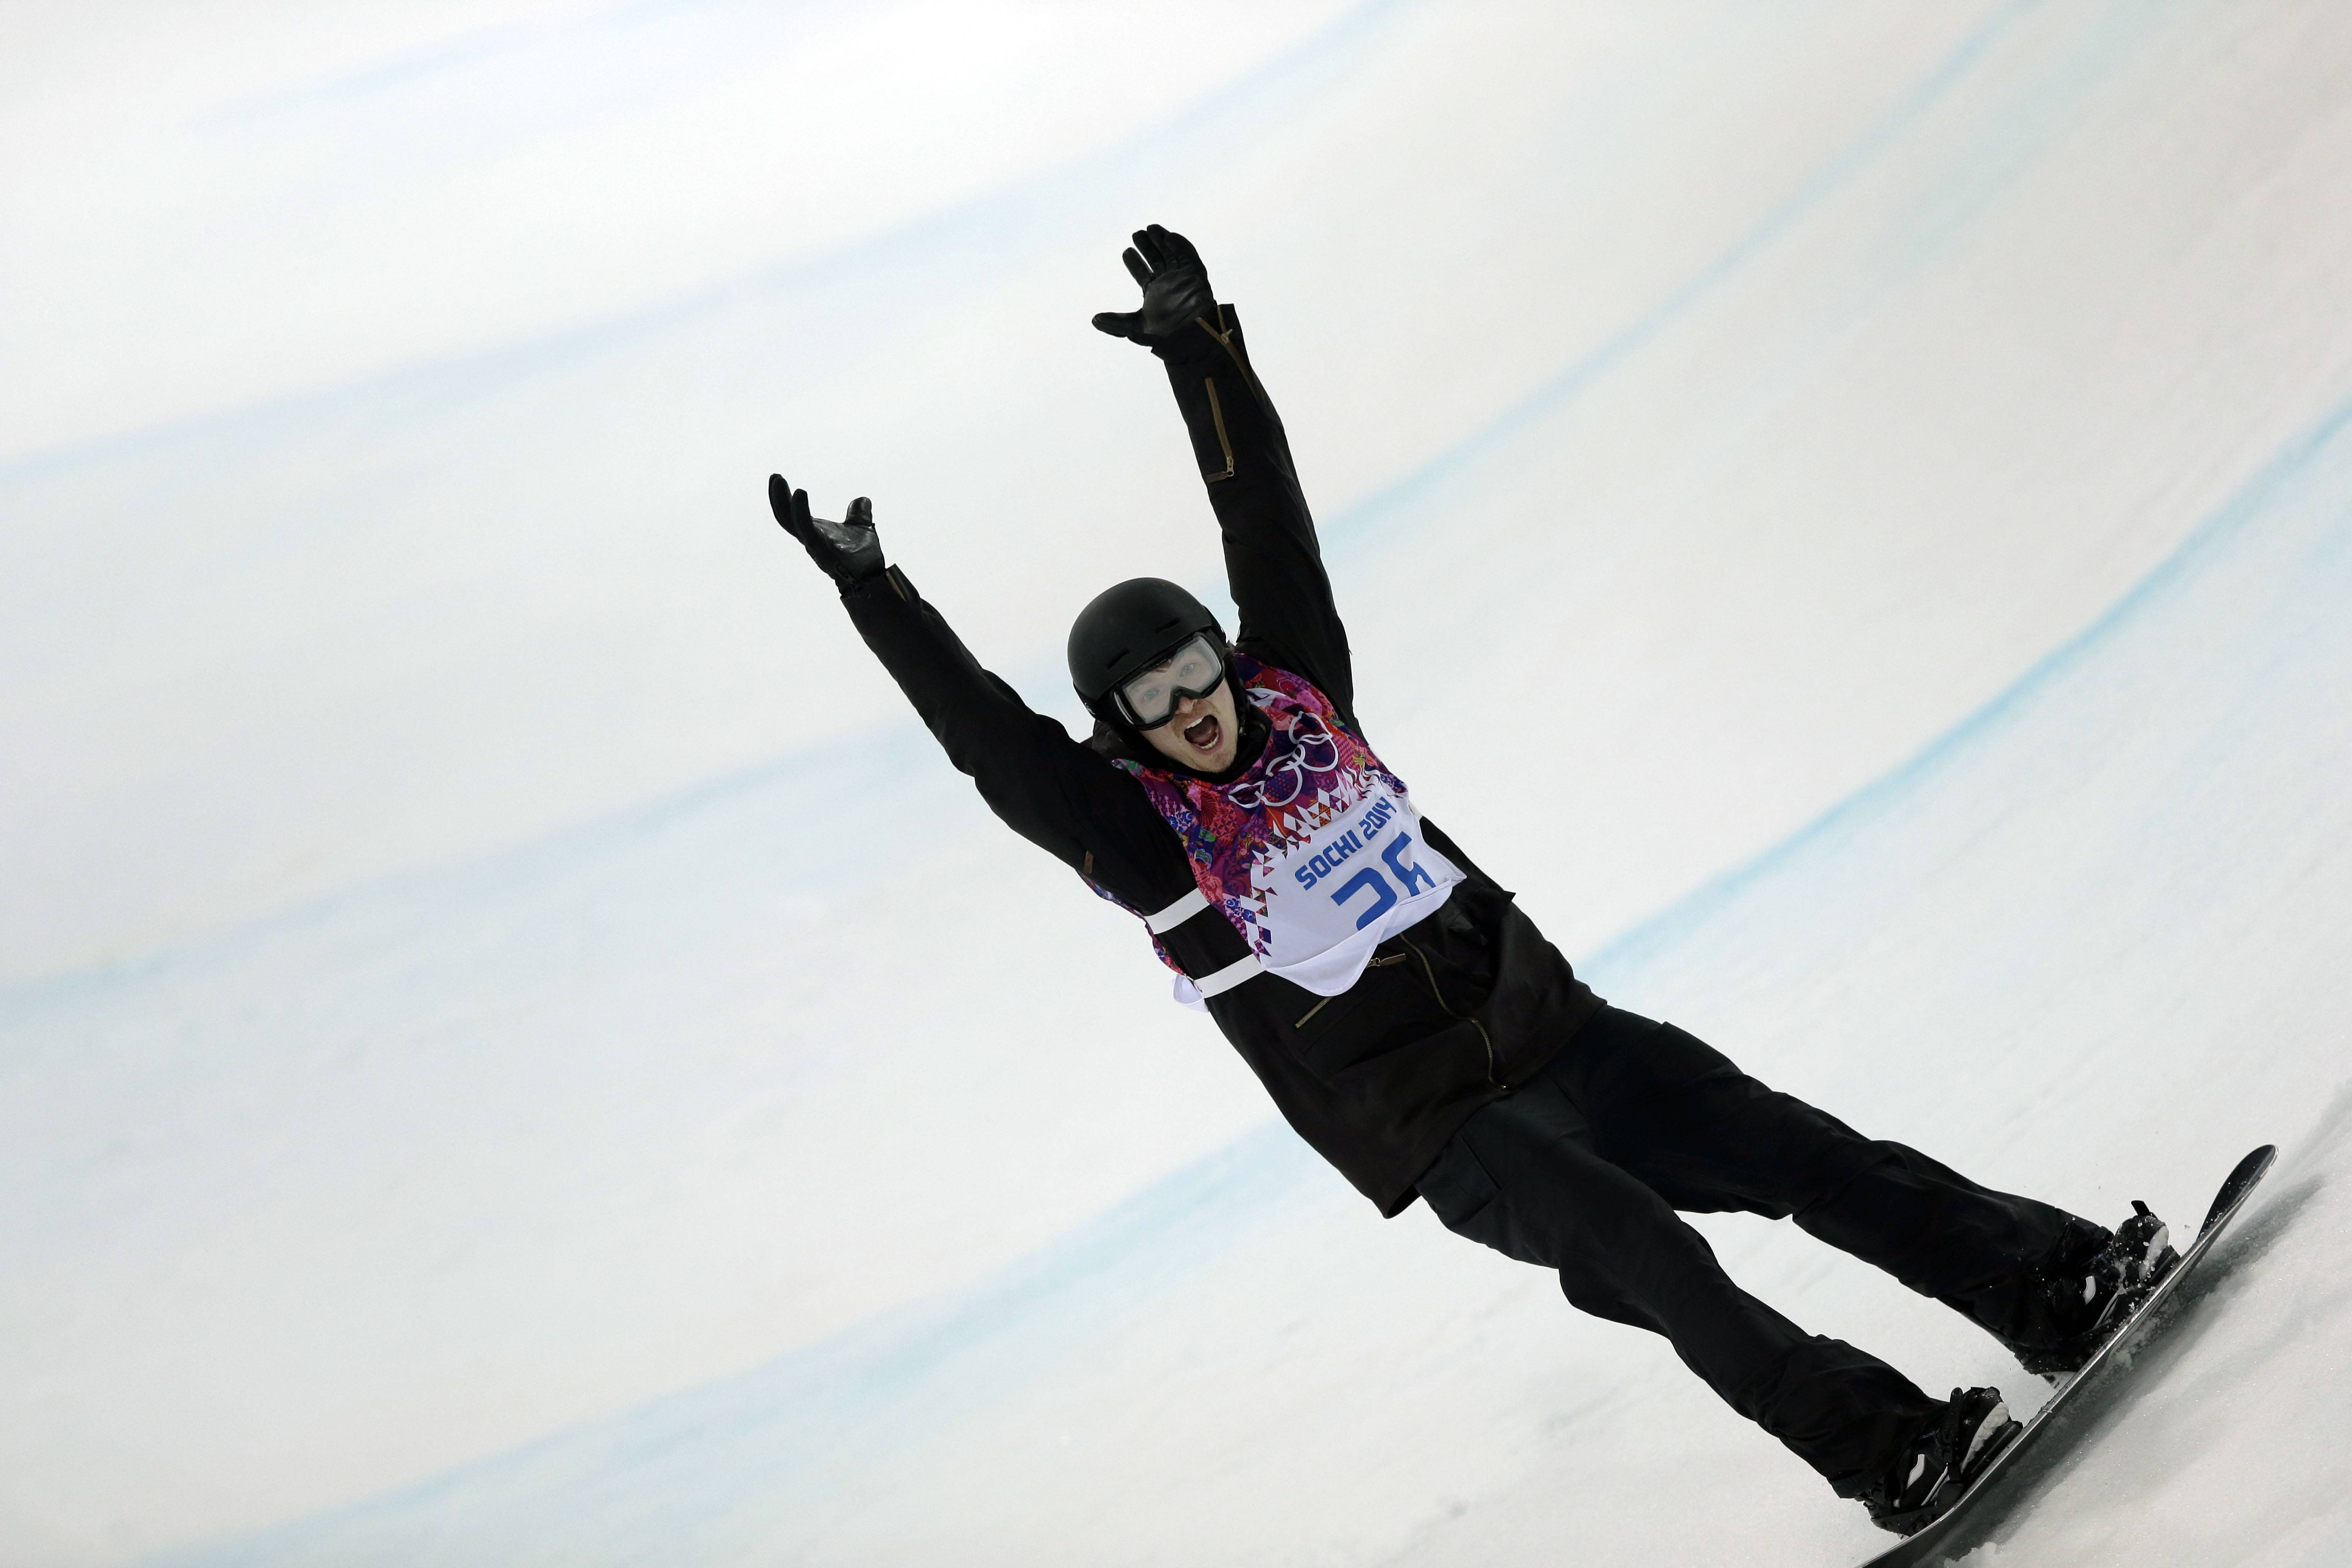 Switzerland's Iouri Podladtchikov celebrates after his second half pipe run during the men's snowboard halfpipe final at the Rosa Khutor Extreme Park, at the 2014 Winter Olympics, Tuesday, Feb. 11, 2014, in Krasnaya Polyana, Russia. Podladtchikov won the gold medal.